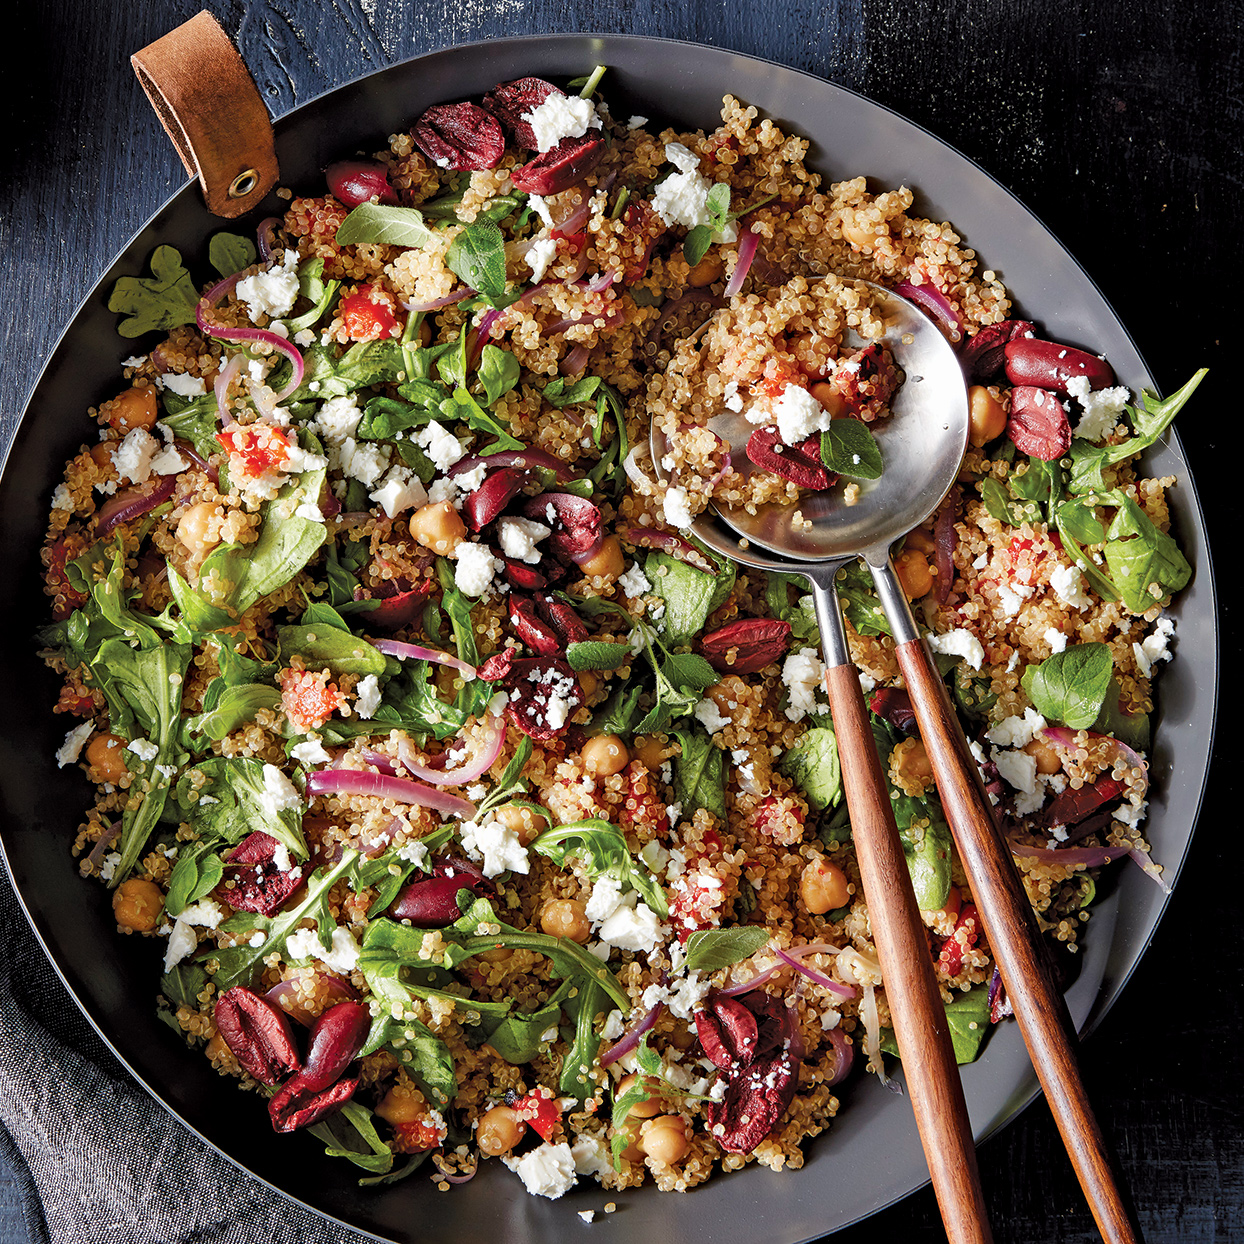 Chock-full of quinoa, chickpeas and vegetables, this salad is a meal in itself. The roasted red peppers, lemon, olives and feta add familiar Mediterranean flavor. If you want to provide a meat option, serve with grilled chicken.